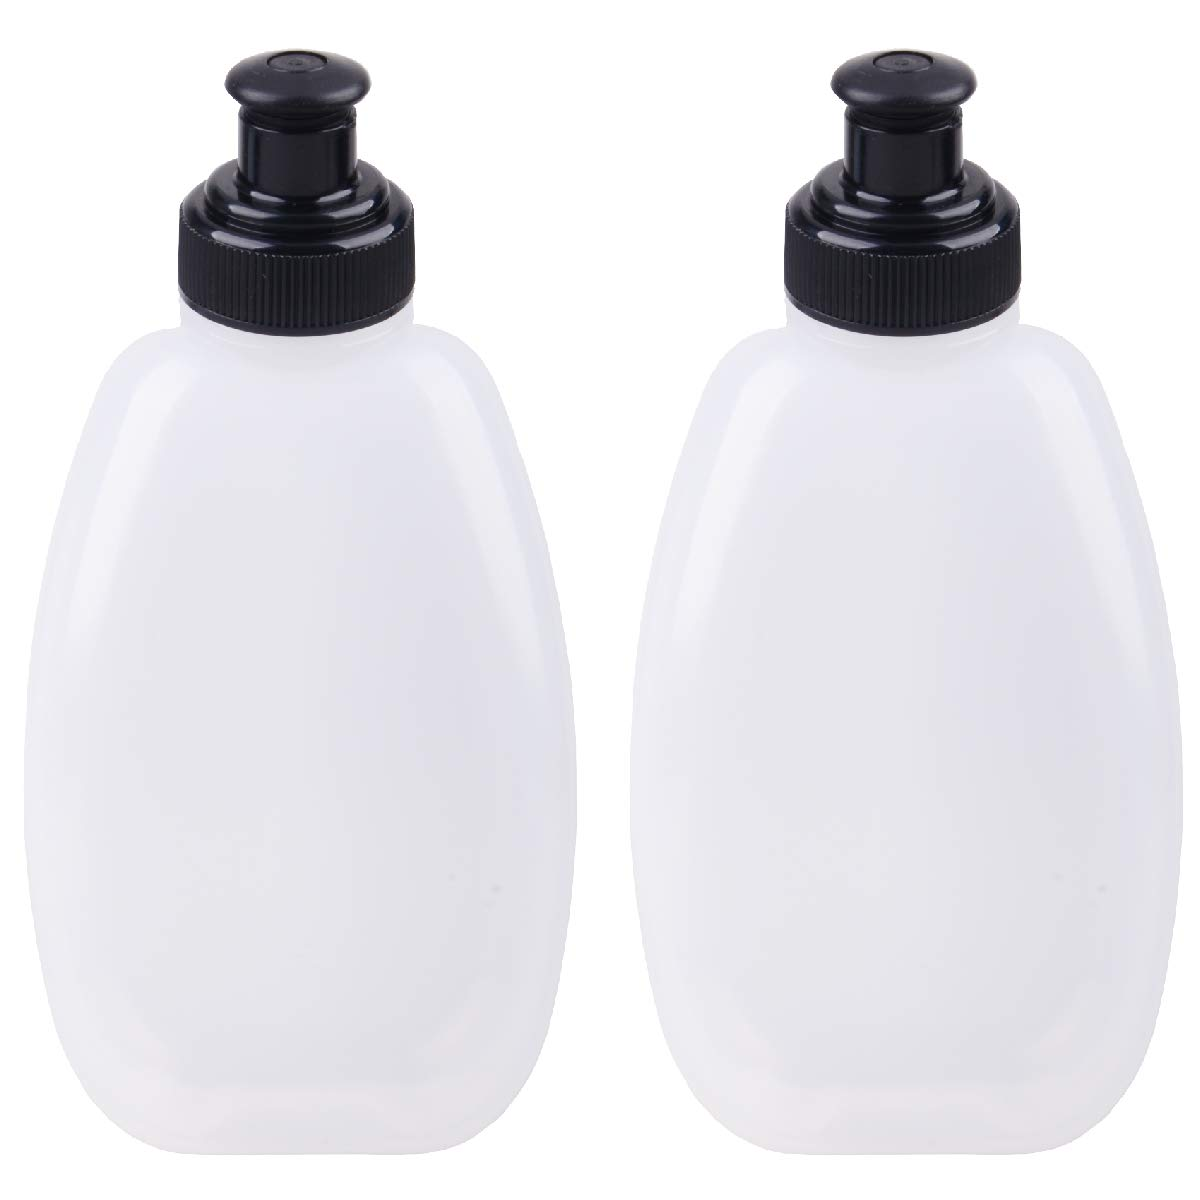 TRIWONDER BPA-Free Leak-Proof Water Bottles Running Flasks for Hydration Belt or Vest Ideal for Running Hiking Cycling